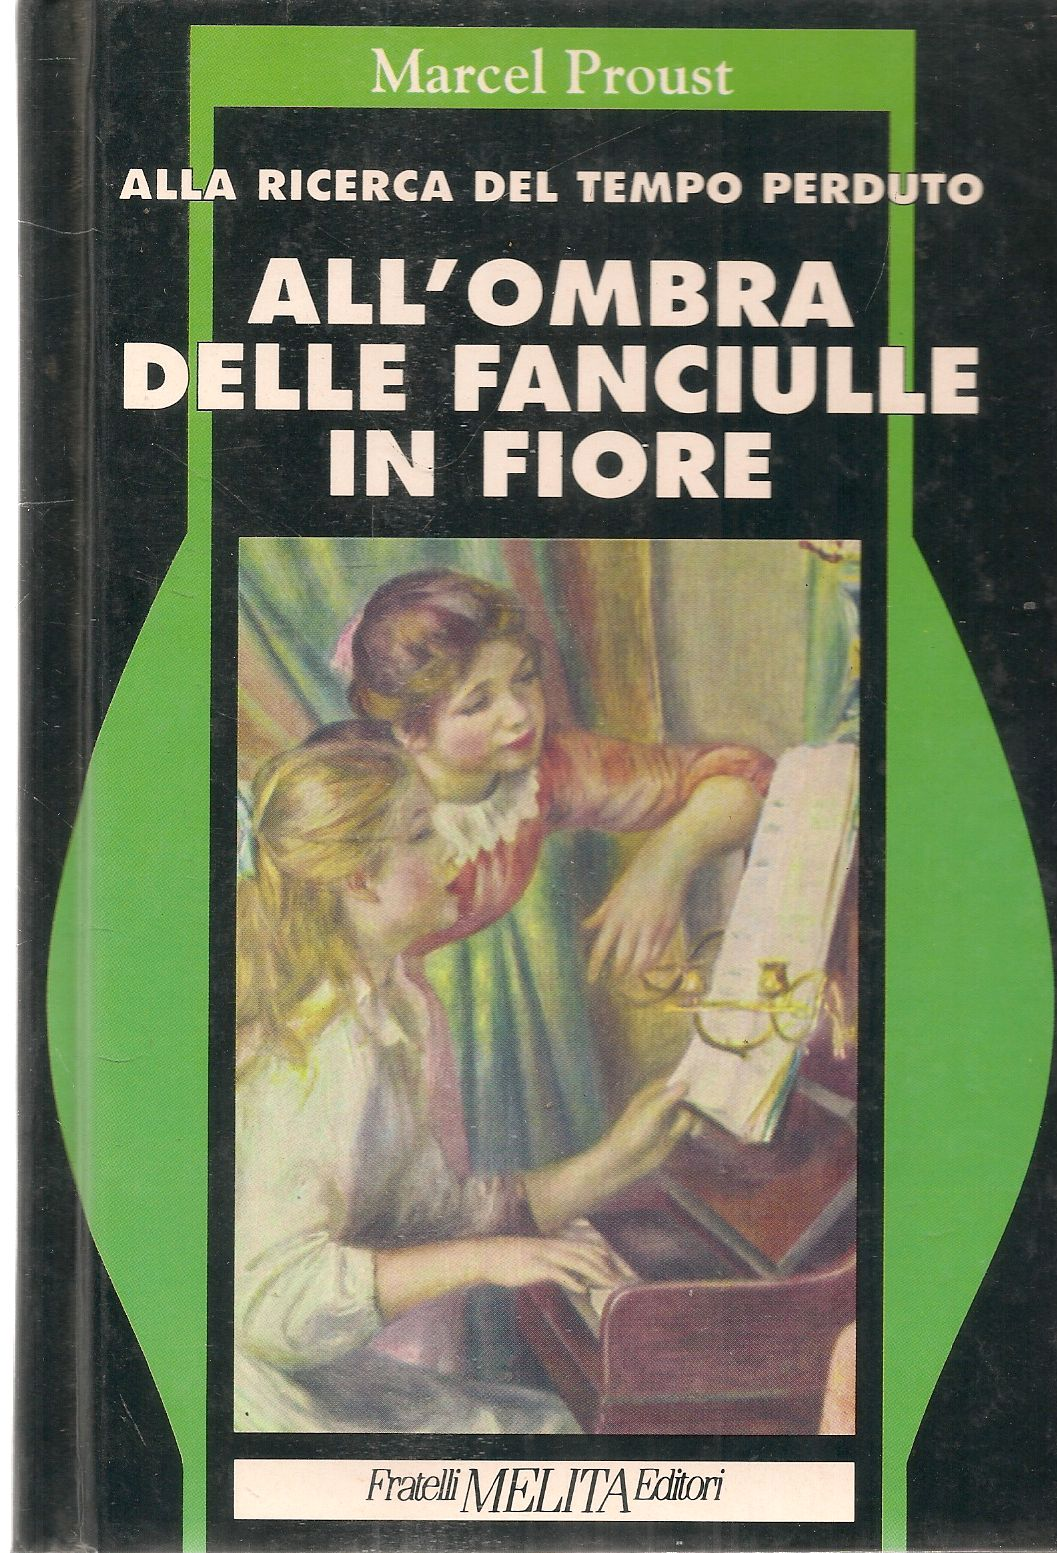 ALL'OMBRA DELLE FANCIULLE IN FIORE - MARCEL PROUST